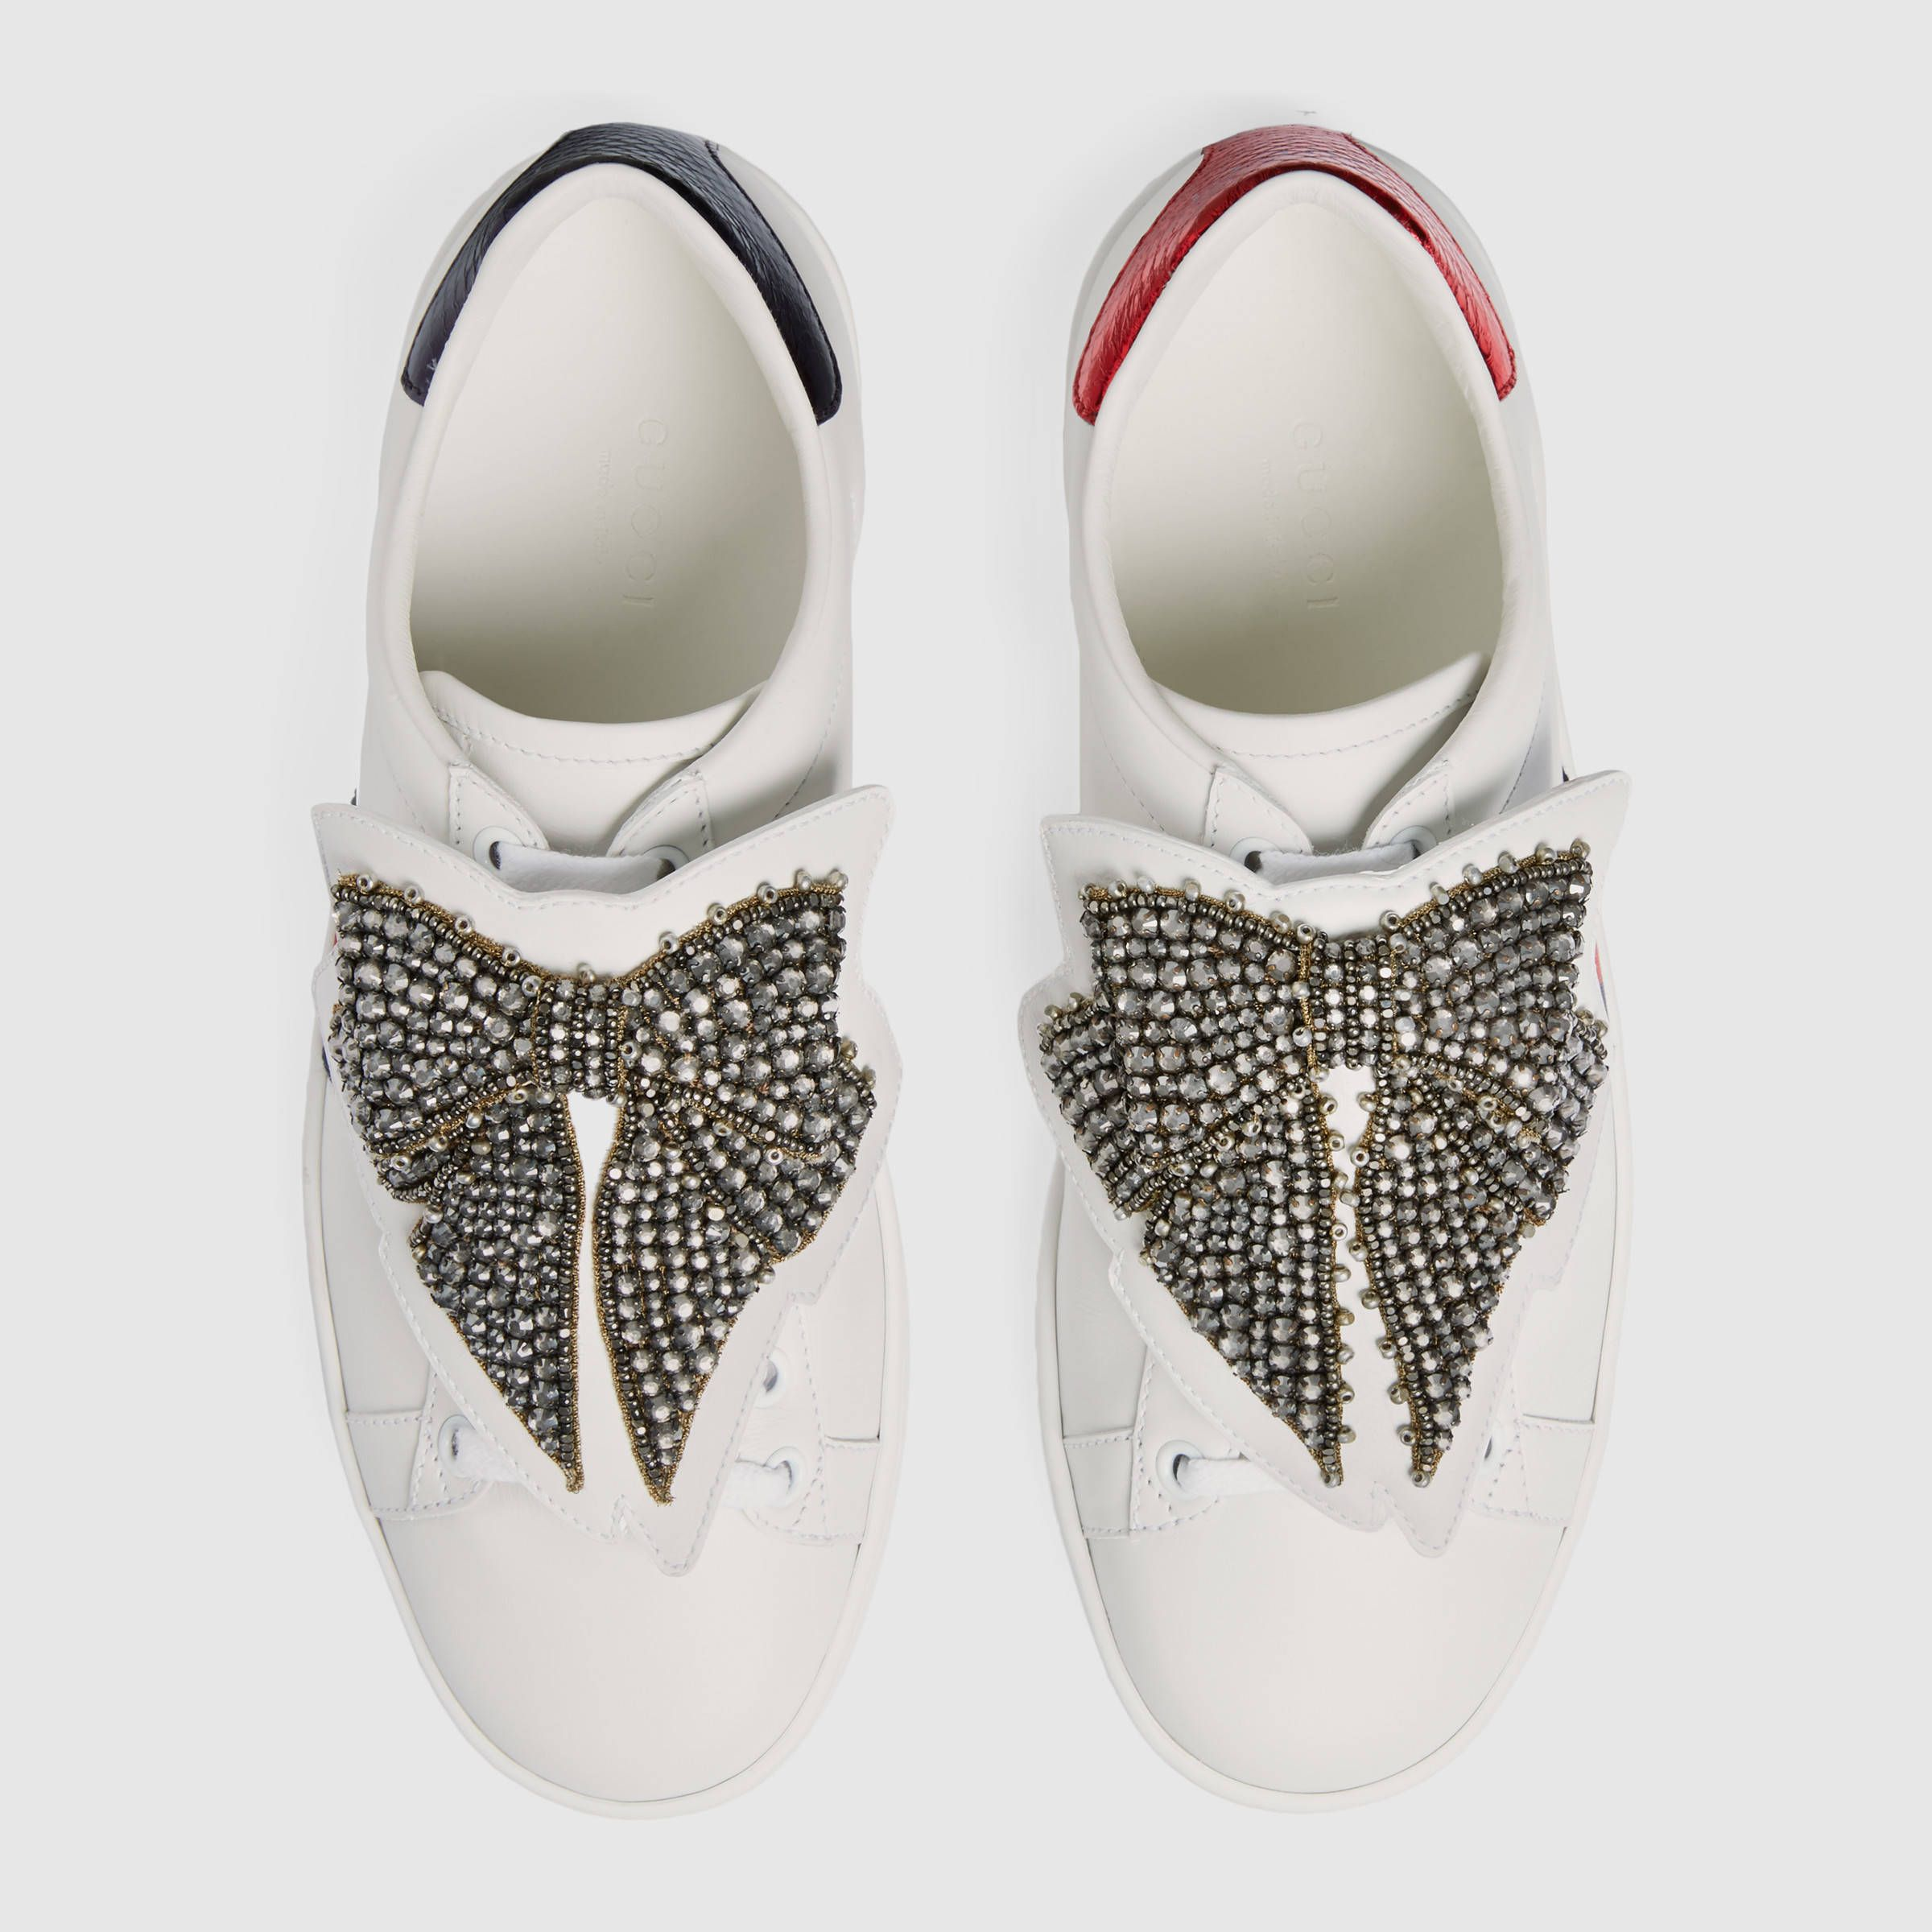 ff6d5c1d4 Gucci Ace sneaker with removable embroideries Detail 2 | SNEAKERS in ...